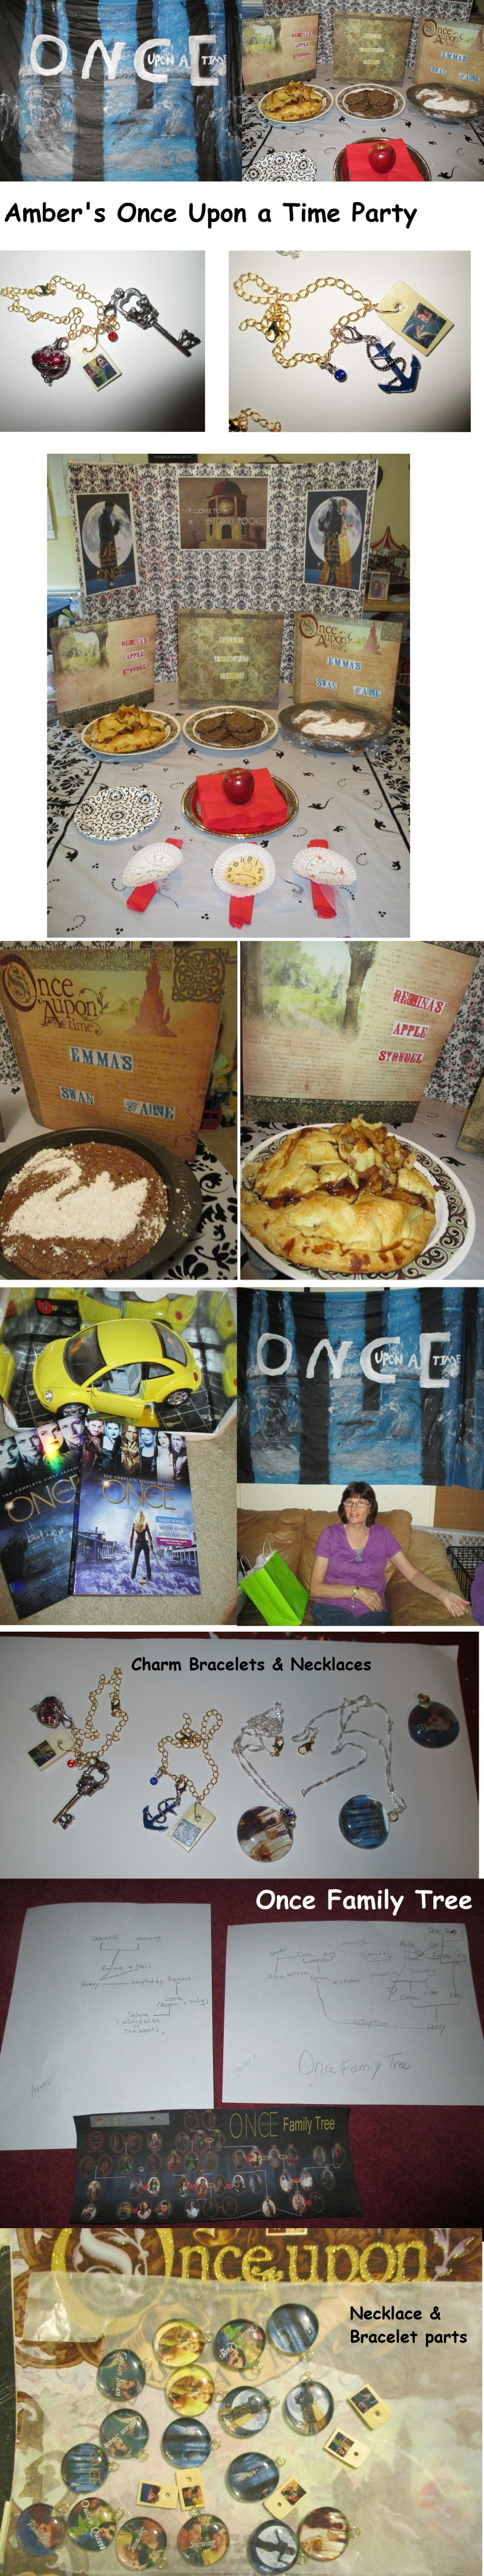 OnceParty